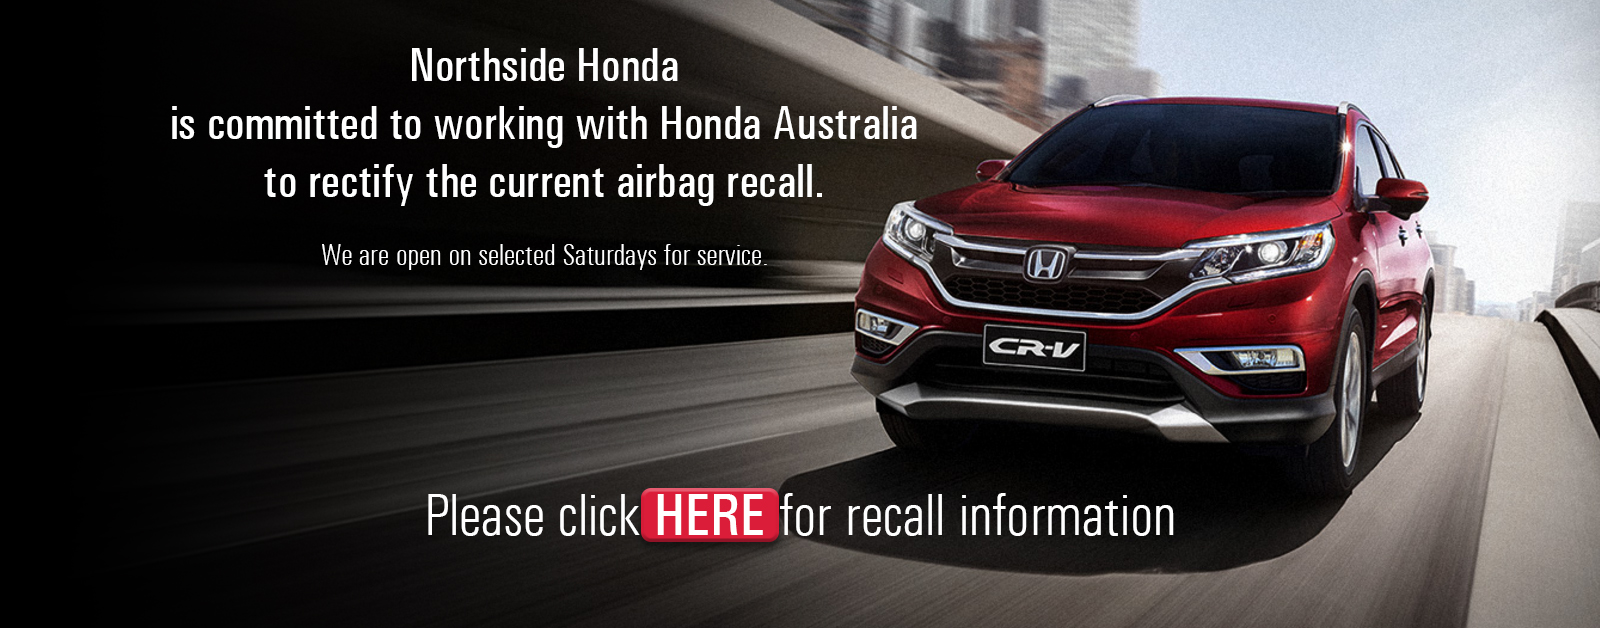 Northside Honda is committed to working with Honda Australia to rectify the current airbag recall.